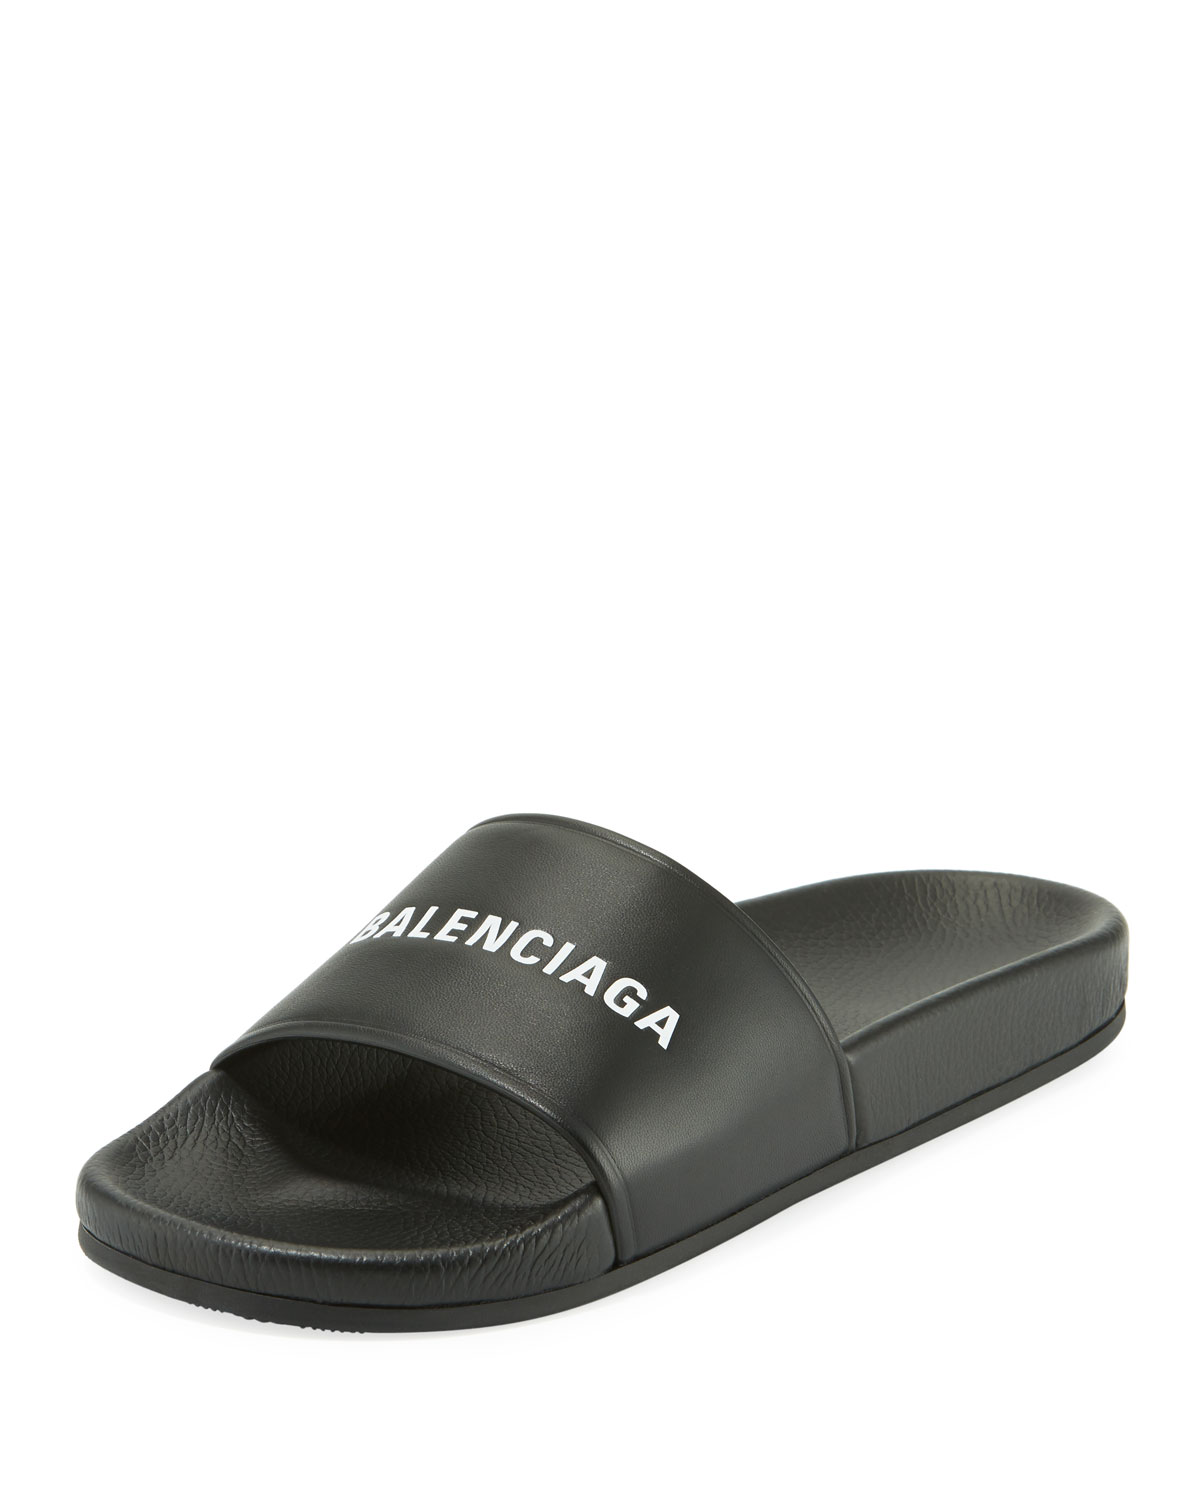 Balenciaga Men s Logo Pool Slide  6f111c2c021b7